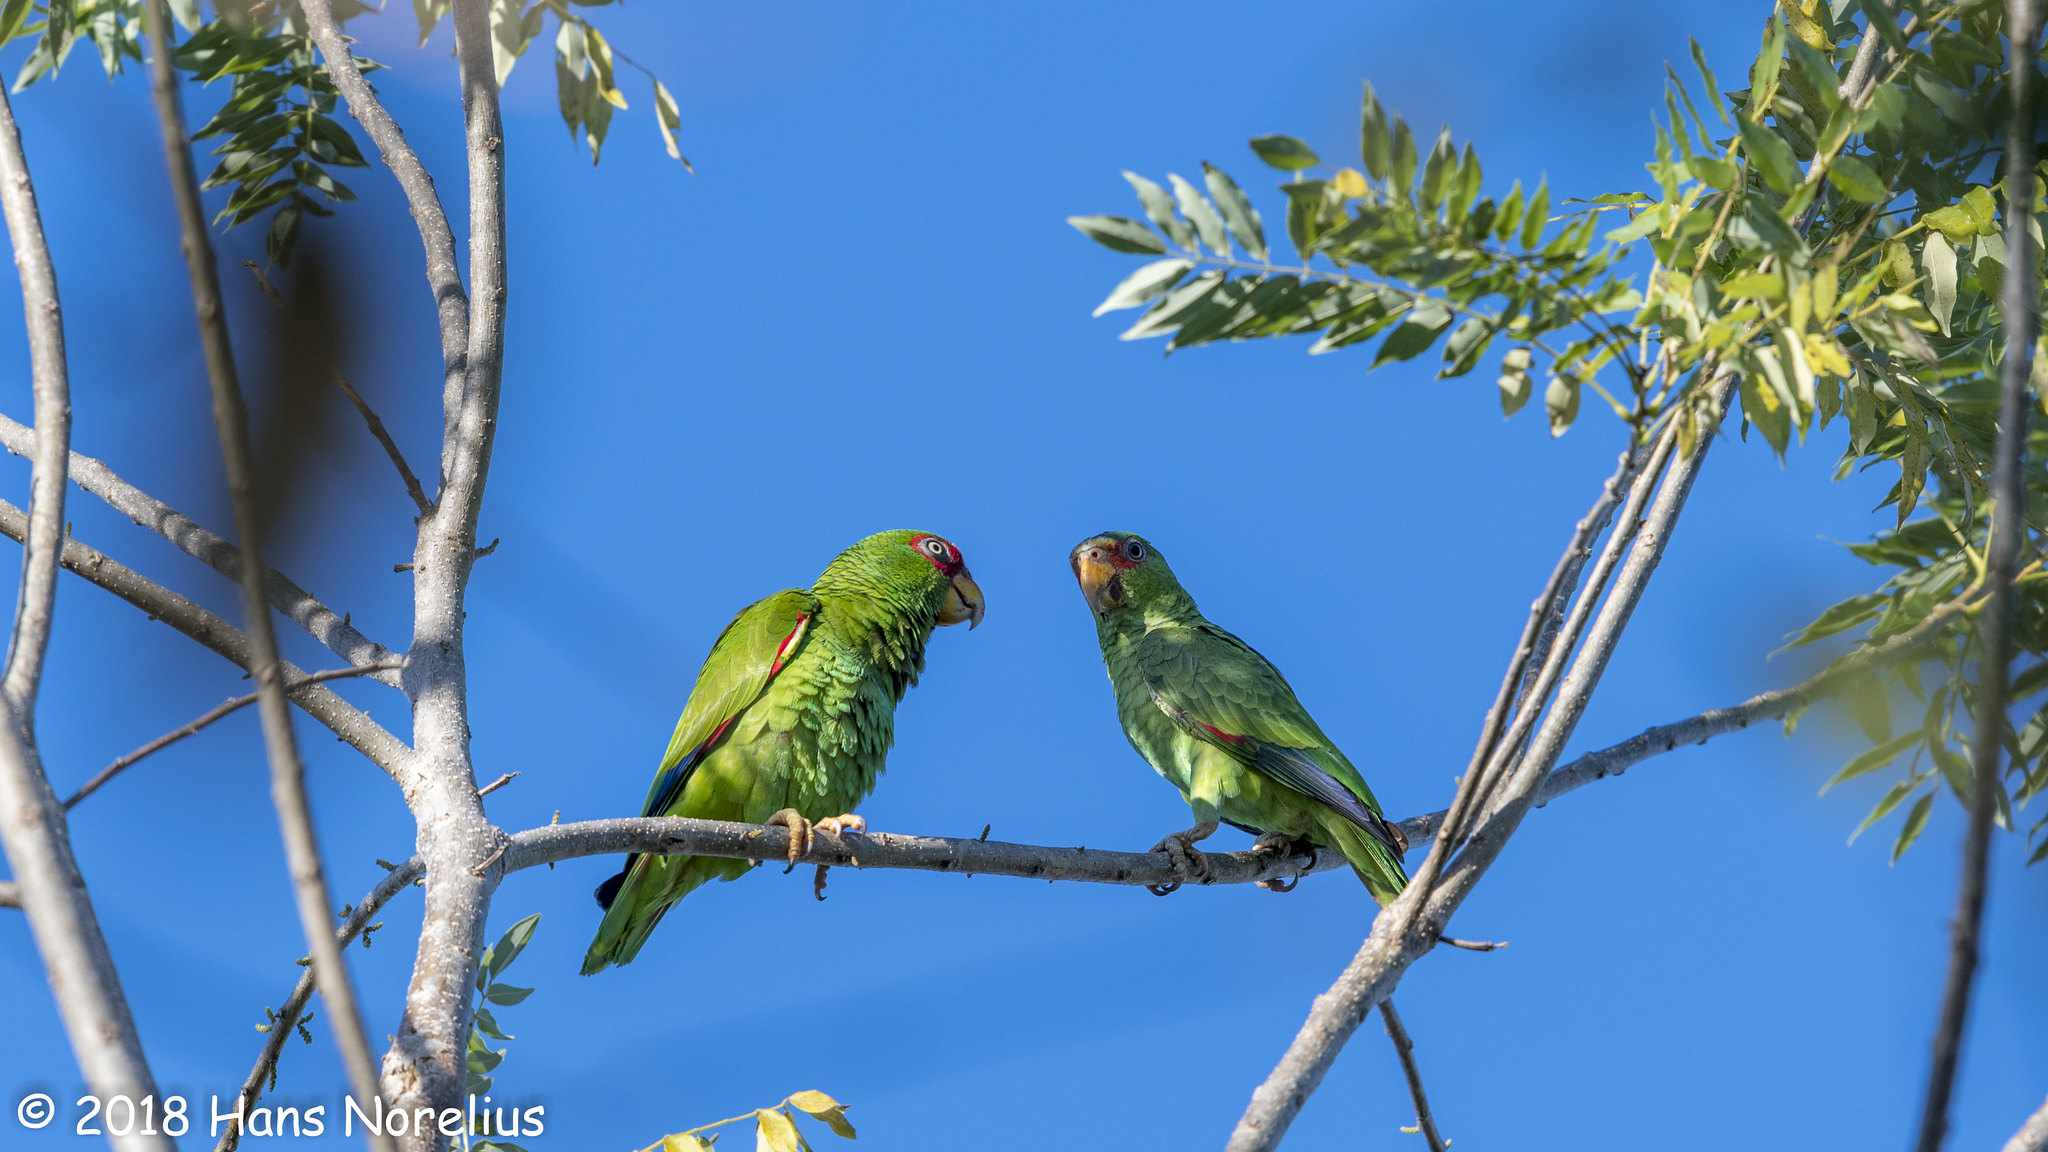 pair of white fronted Amazon parrots, The male has the red feathers on the shoulder and the female has green shoulders